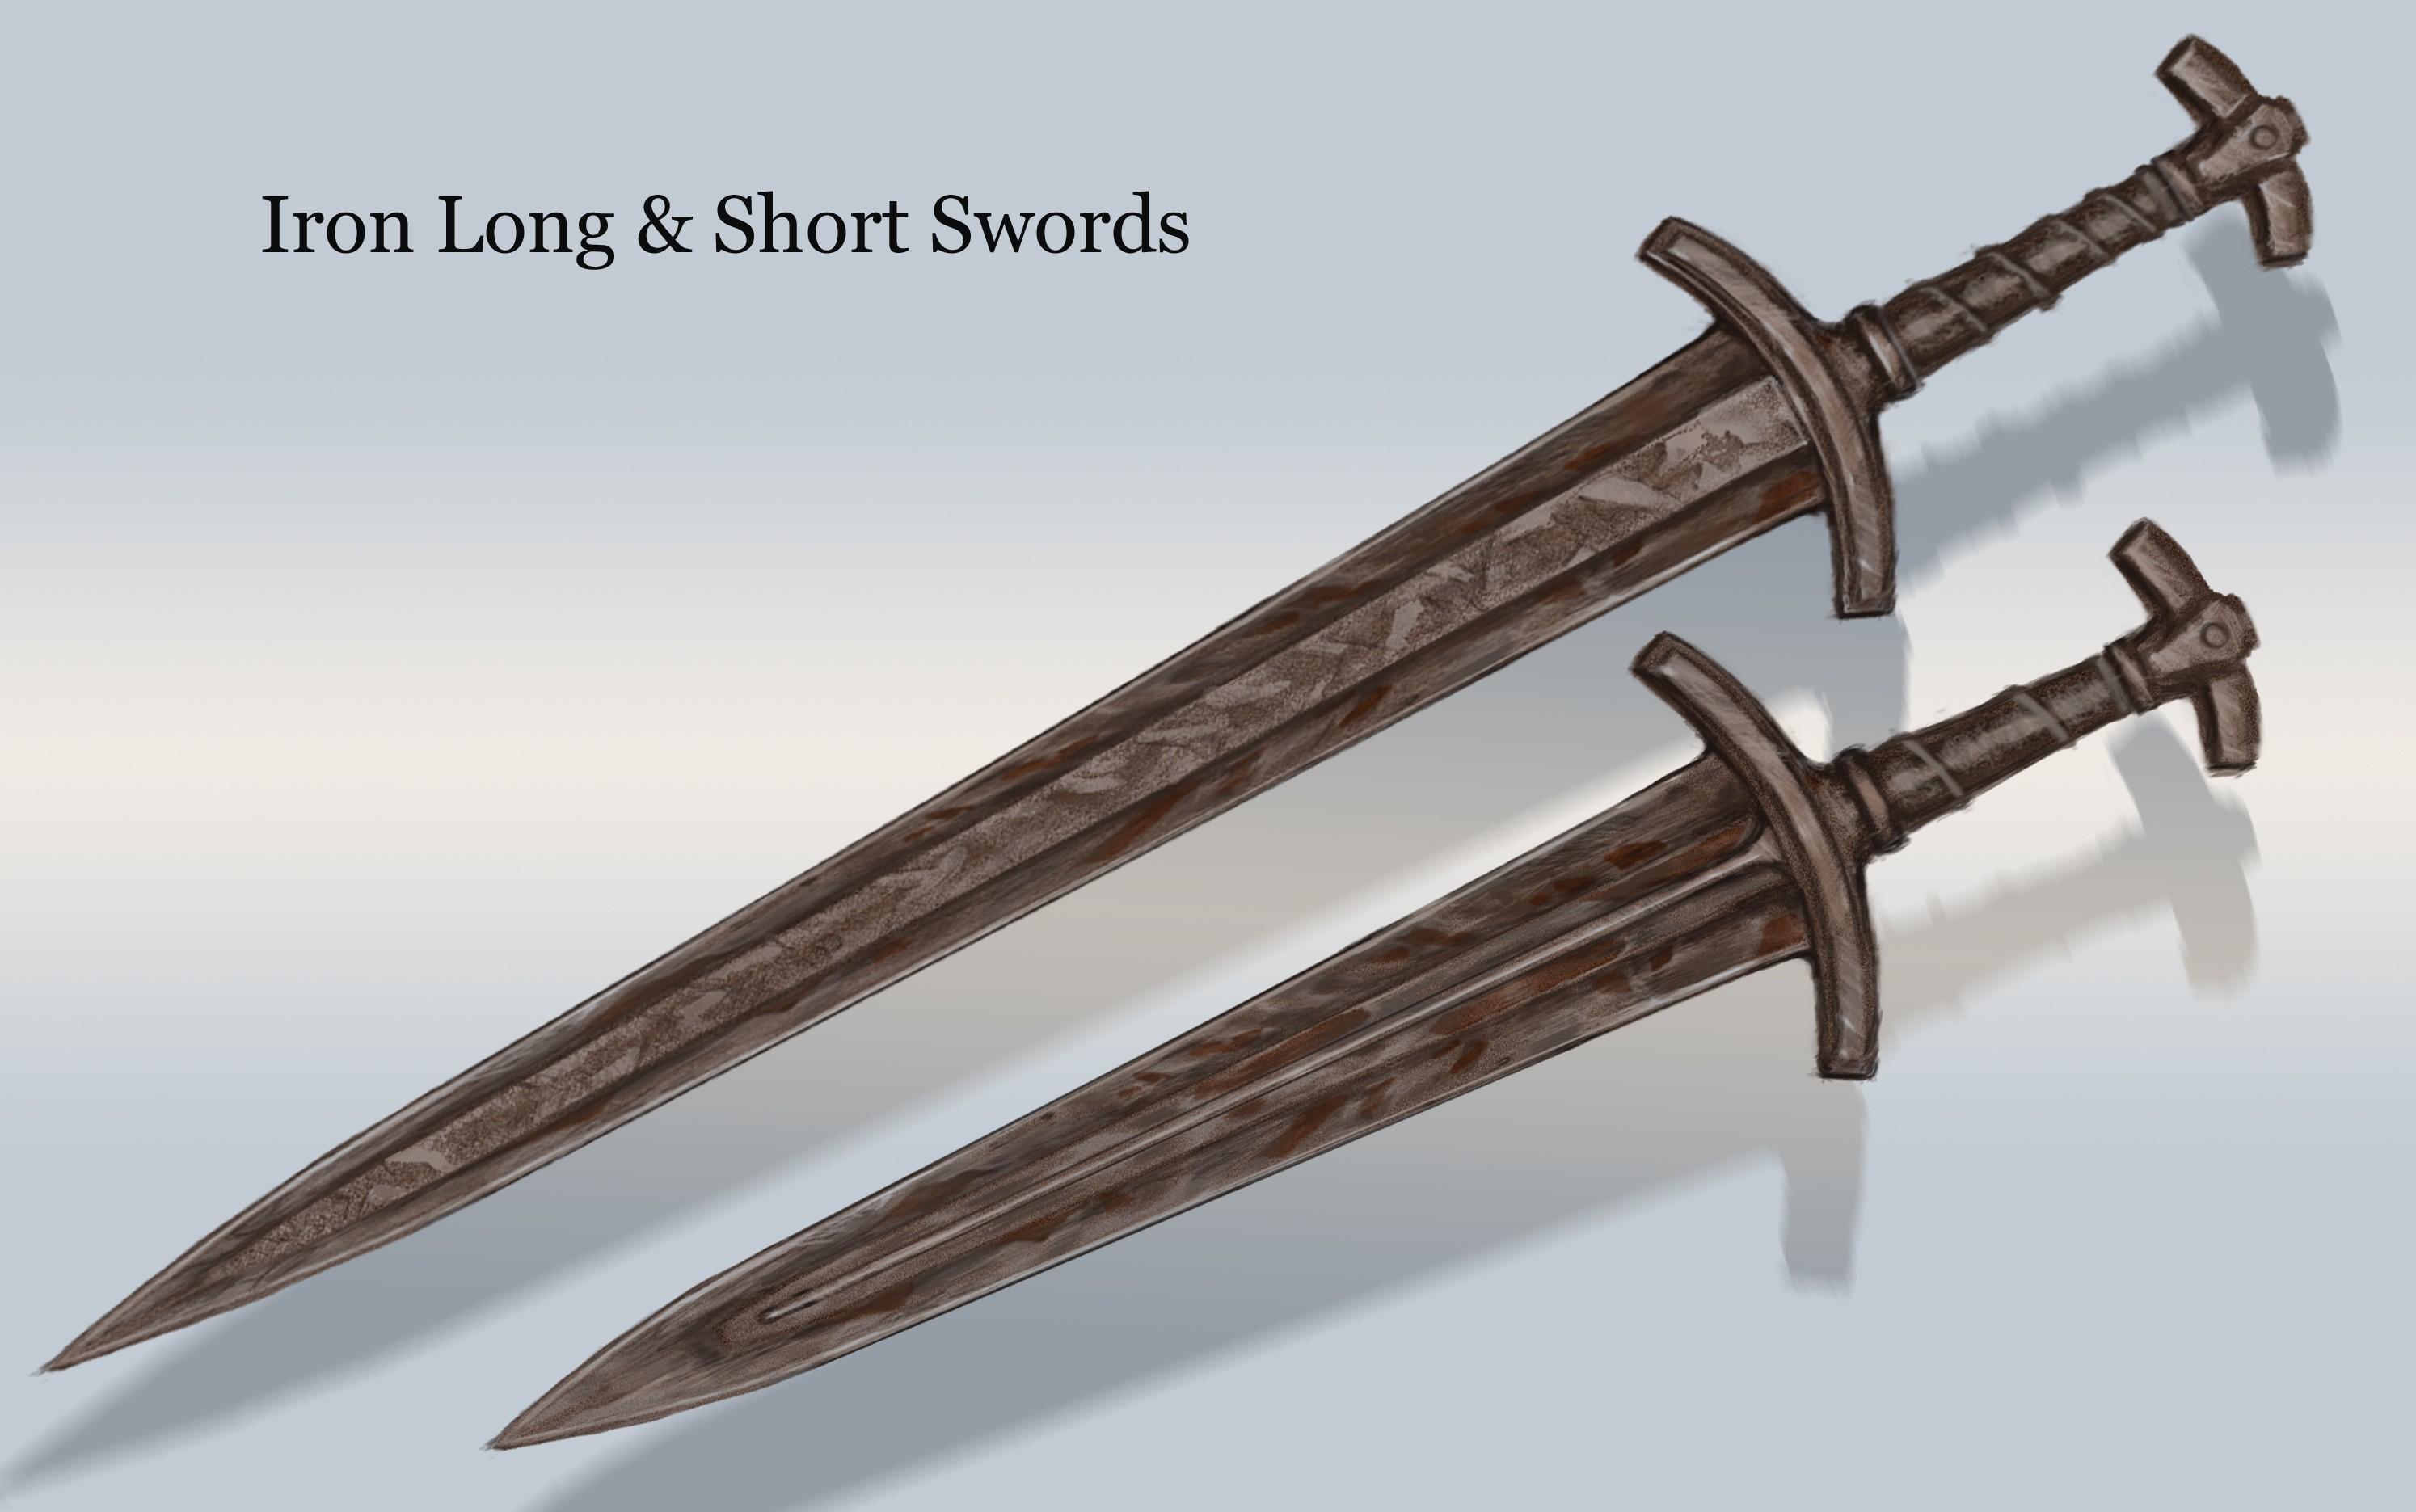 Fichier:Iron Long and Short Swords.jpg